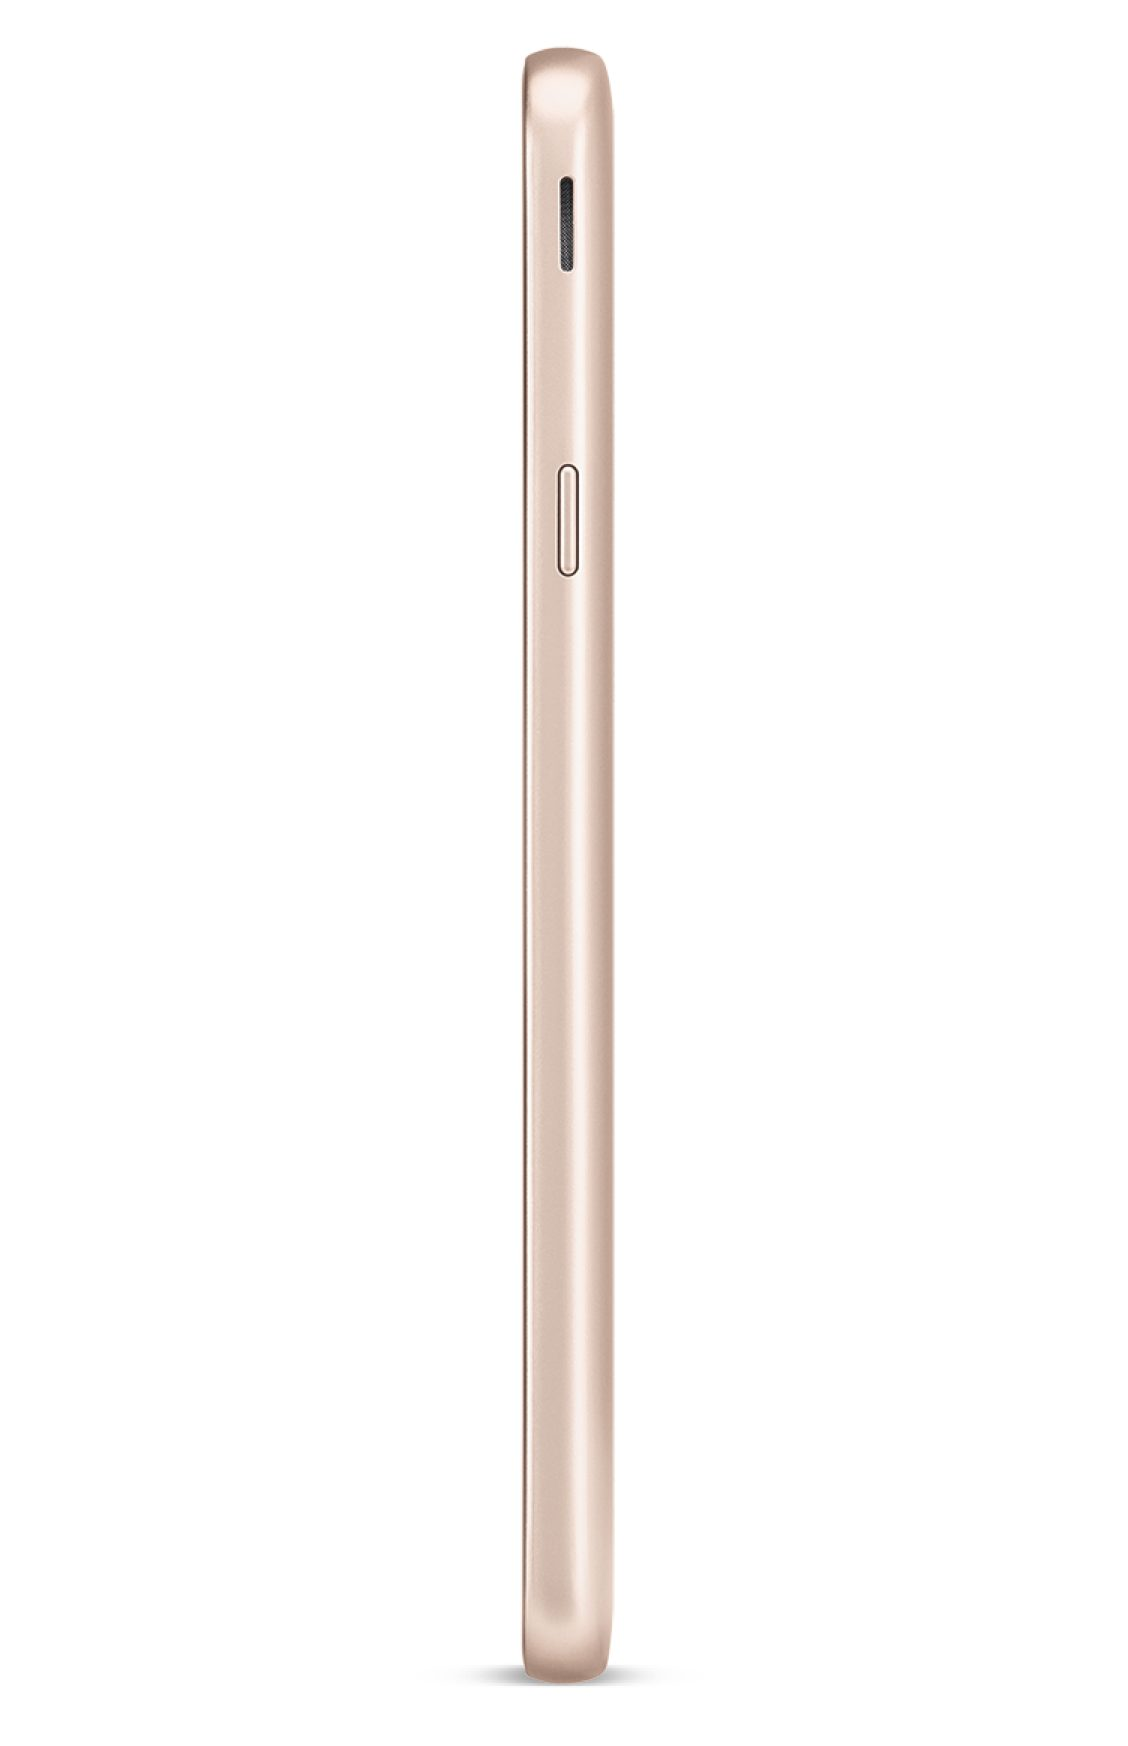 J7 Refine, 32GB, Gold, Boost Mobile